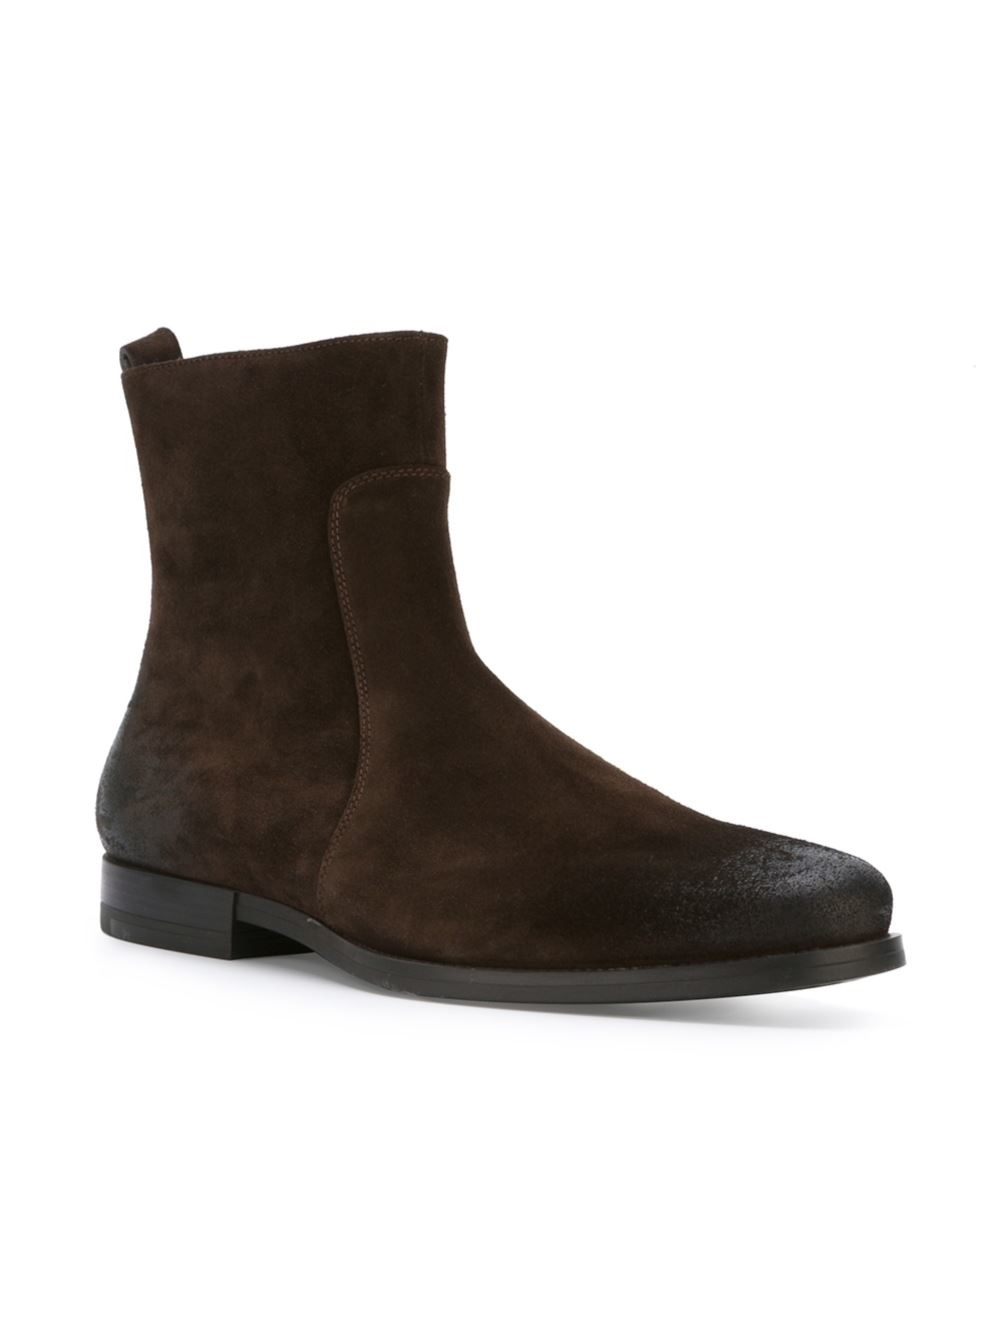 santoni side zip ankle boots in brown for lyst